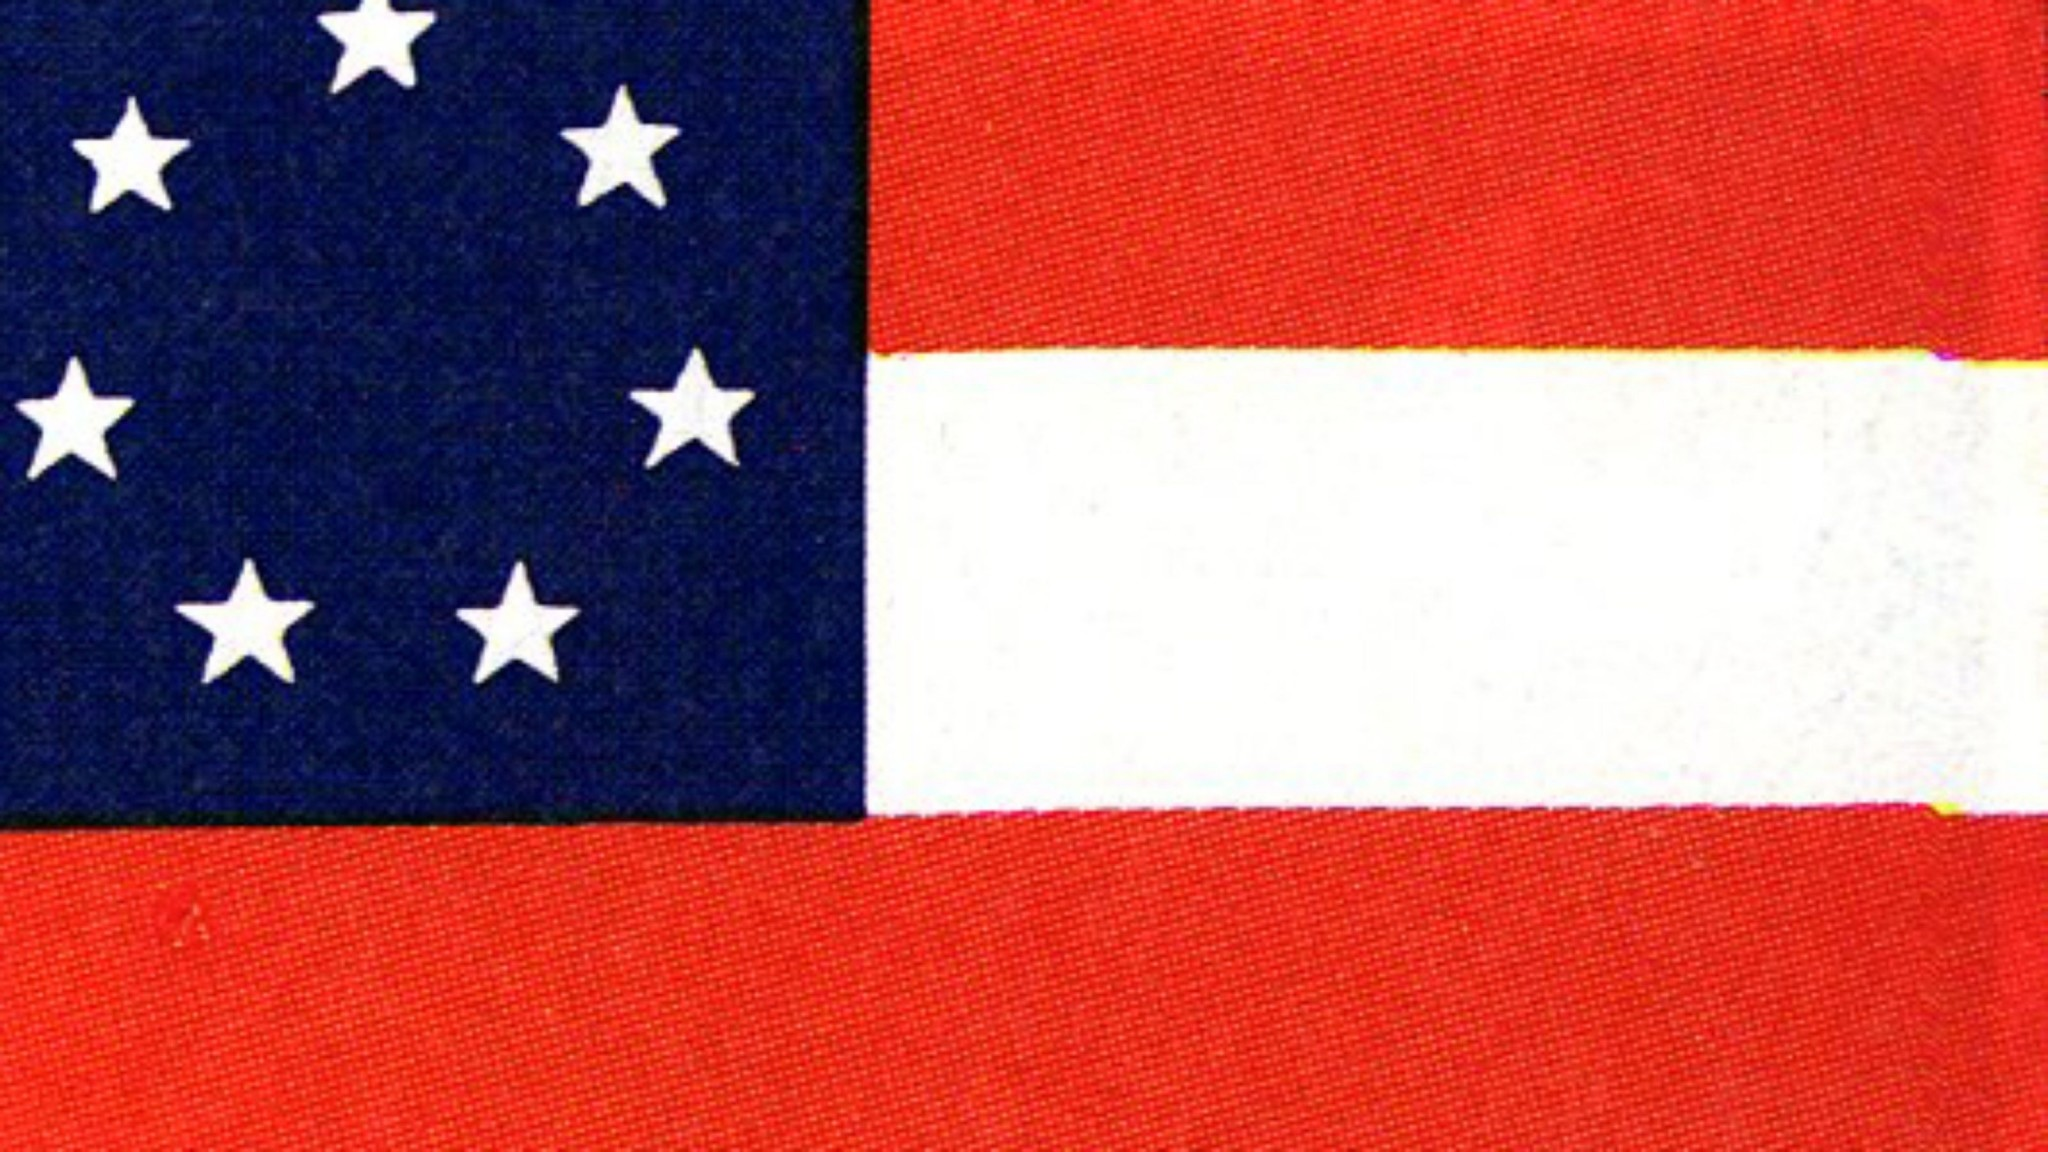 2048x1152 confederate flag hd widescreen wallpapers backgrounds | ololoshenka |  Pinterest | Hd widescreen wallpapers, Widescreen wallpaper and Wallpaper  backgrounds